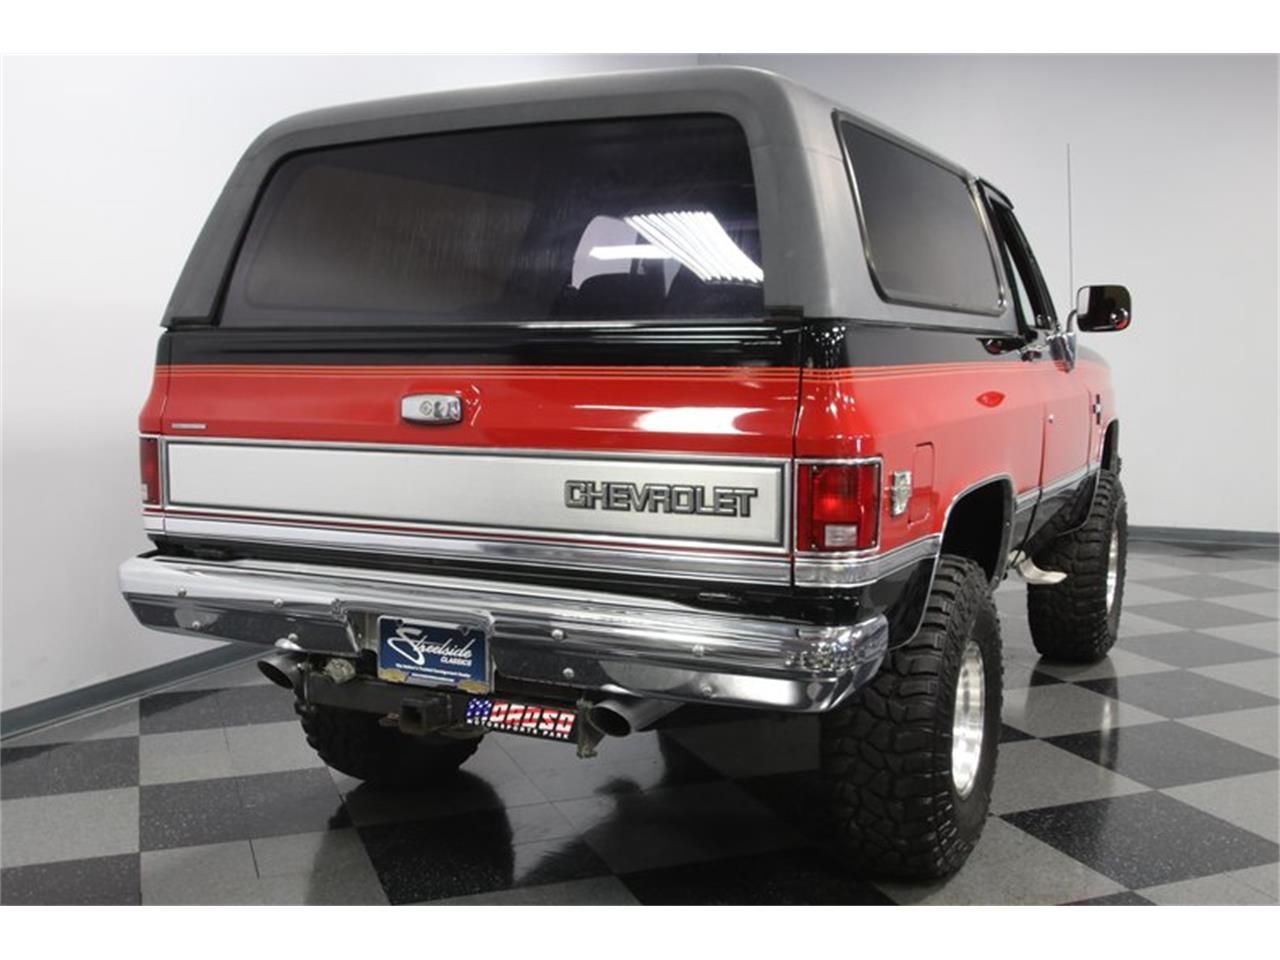 Large Picture of '88 Chevrolet Blazer located in North Carolina Offered by Streetside Classics - Charlotte - QEFQ